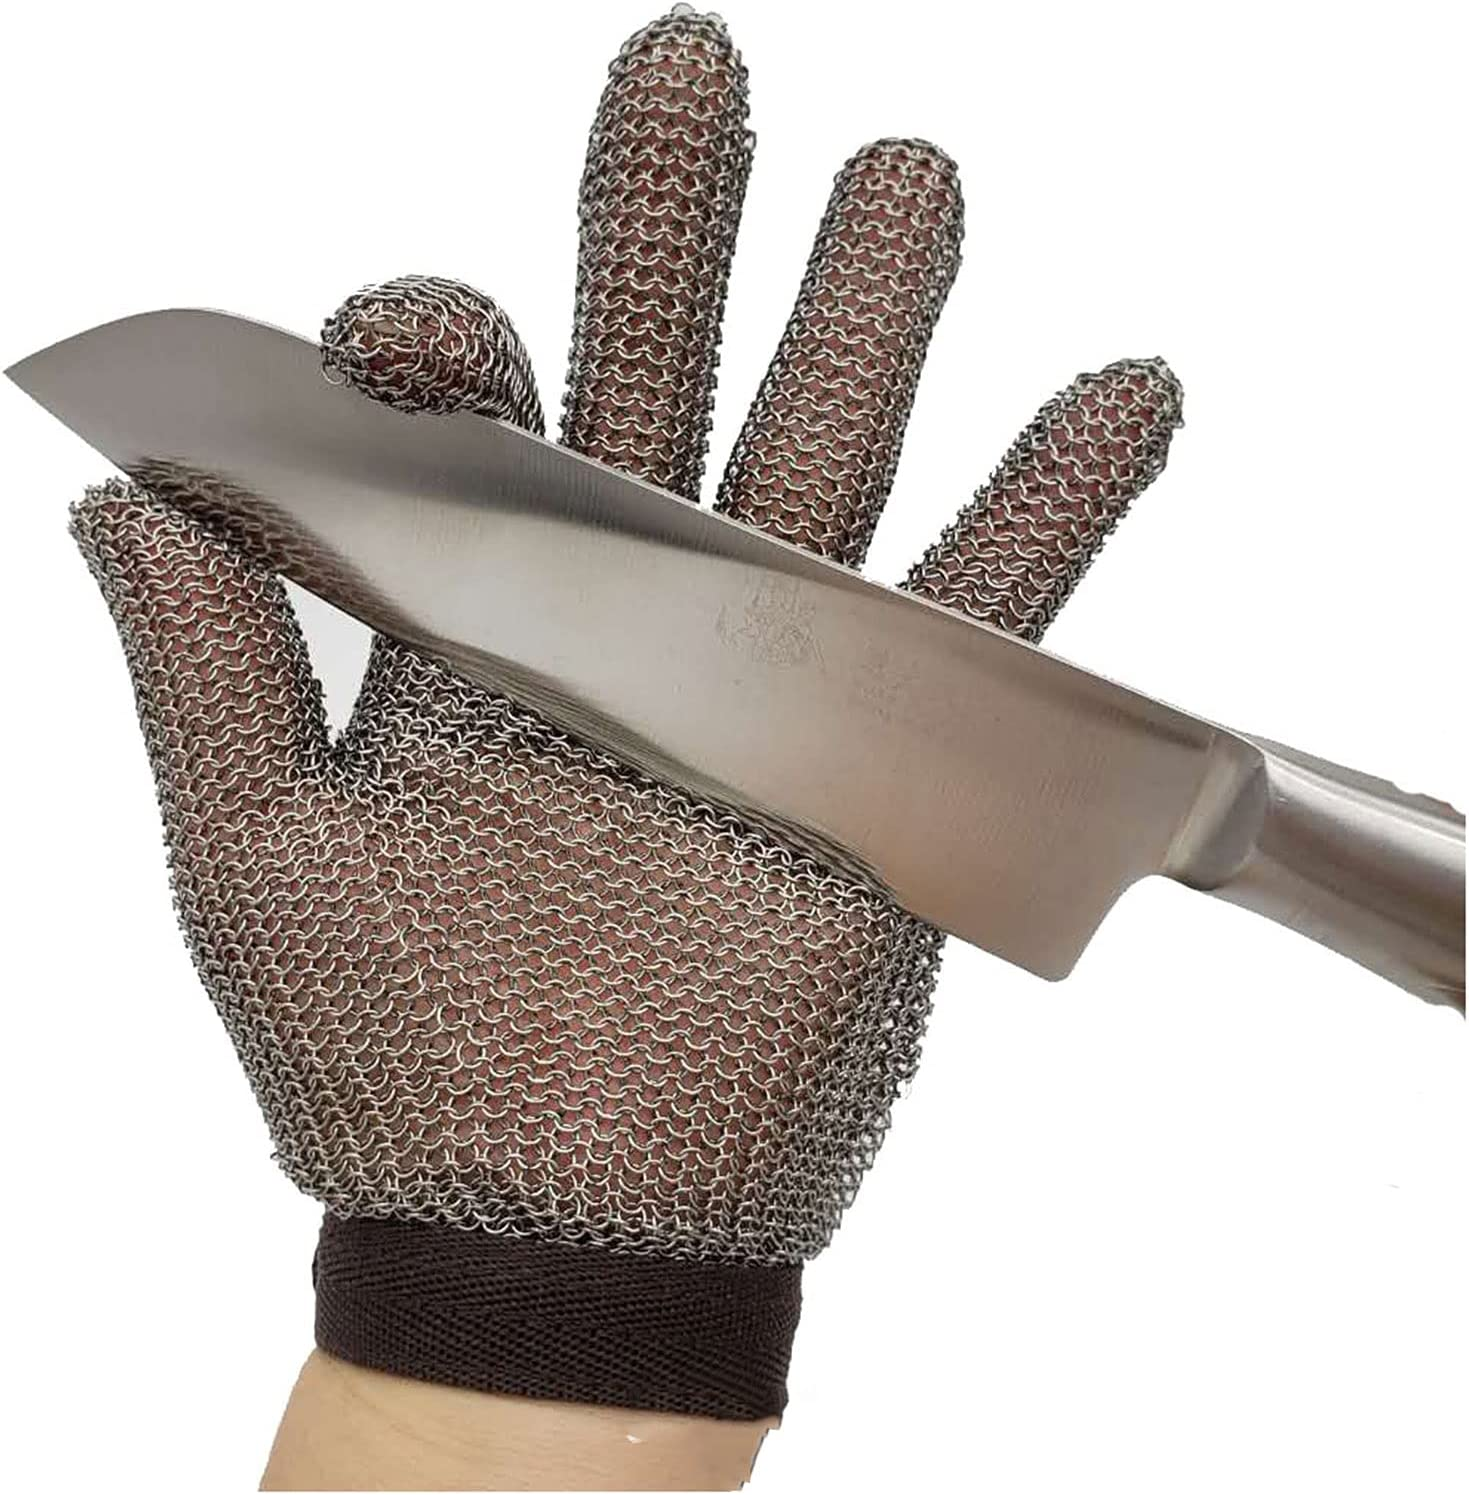 Steel wire gloves Kitchen Japan Maker New Gloves Stainless Cut-Resistant Quantity limited